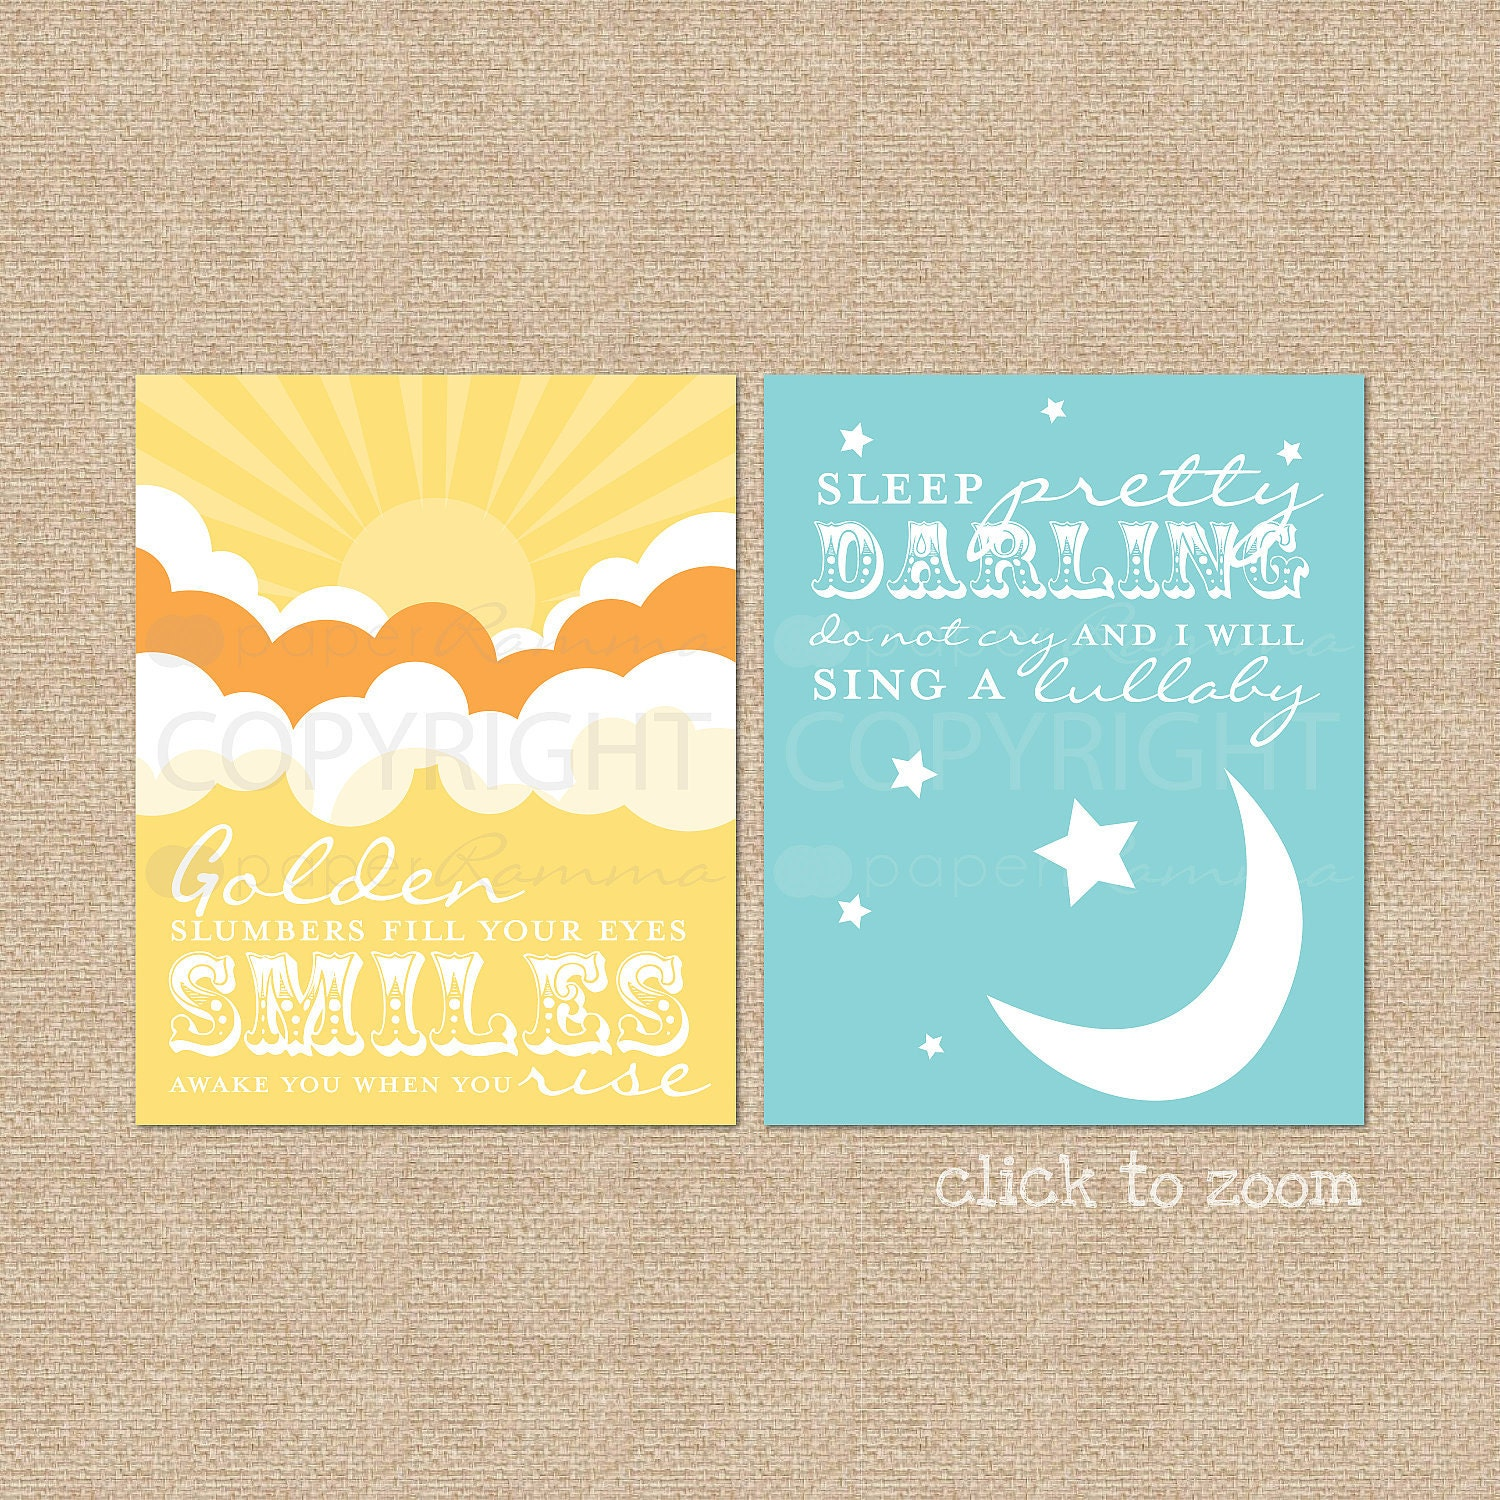 Best Quotes From The Beatles: Golden Slumbers Quote By The Beatles // Set Of 2 Nursery